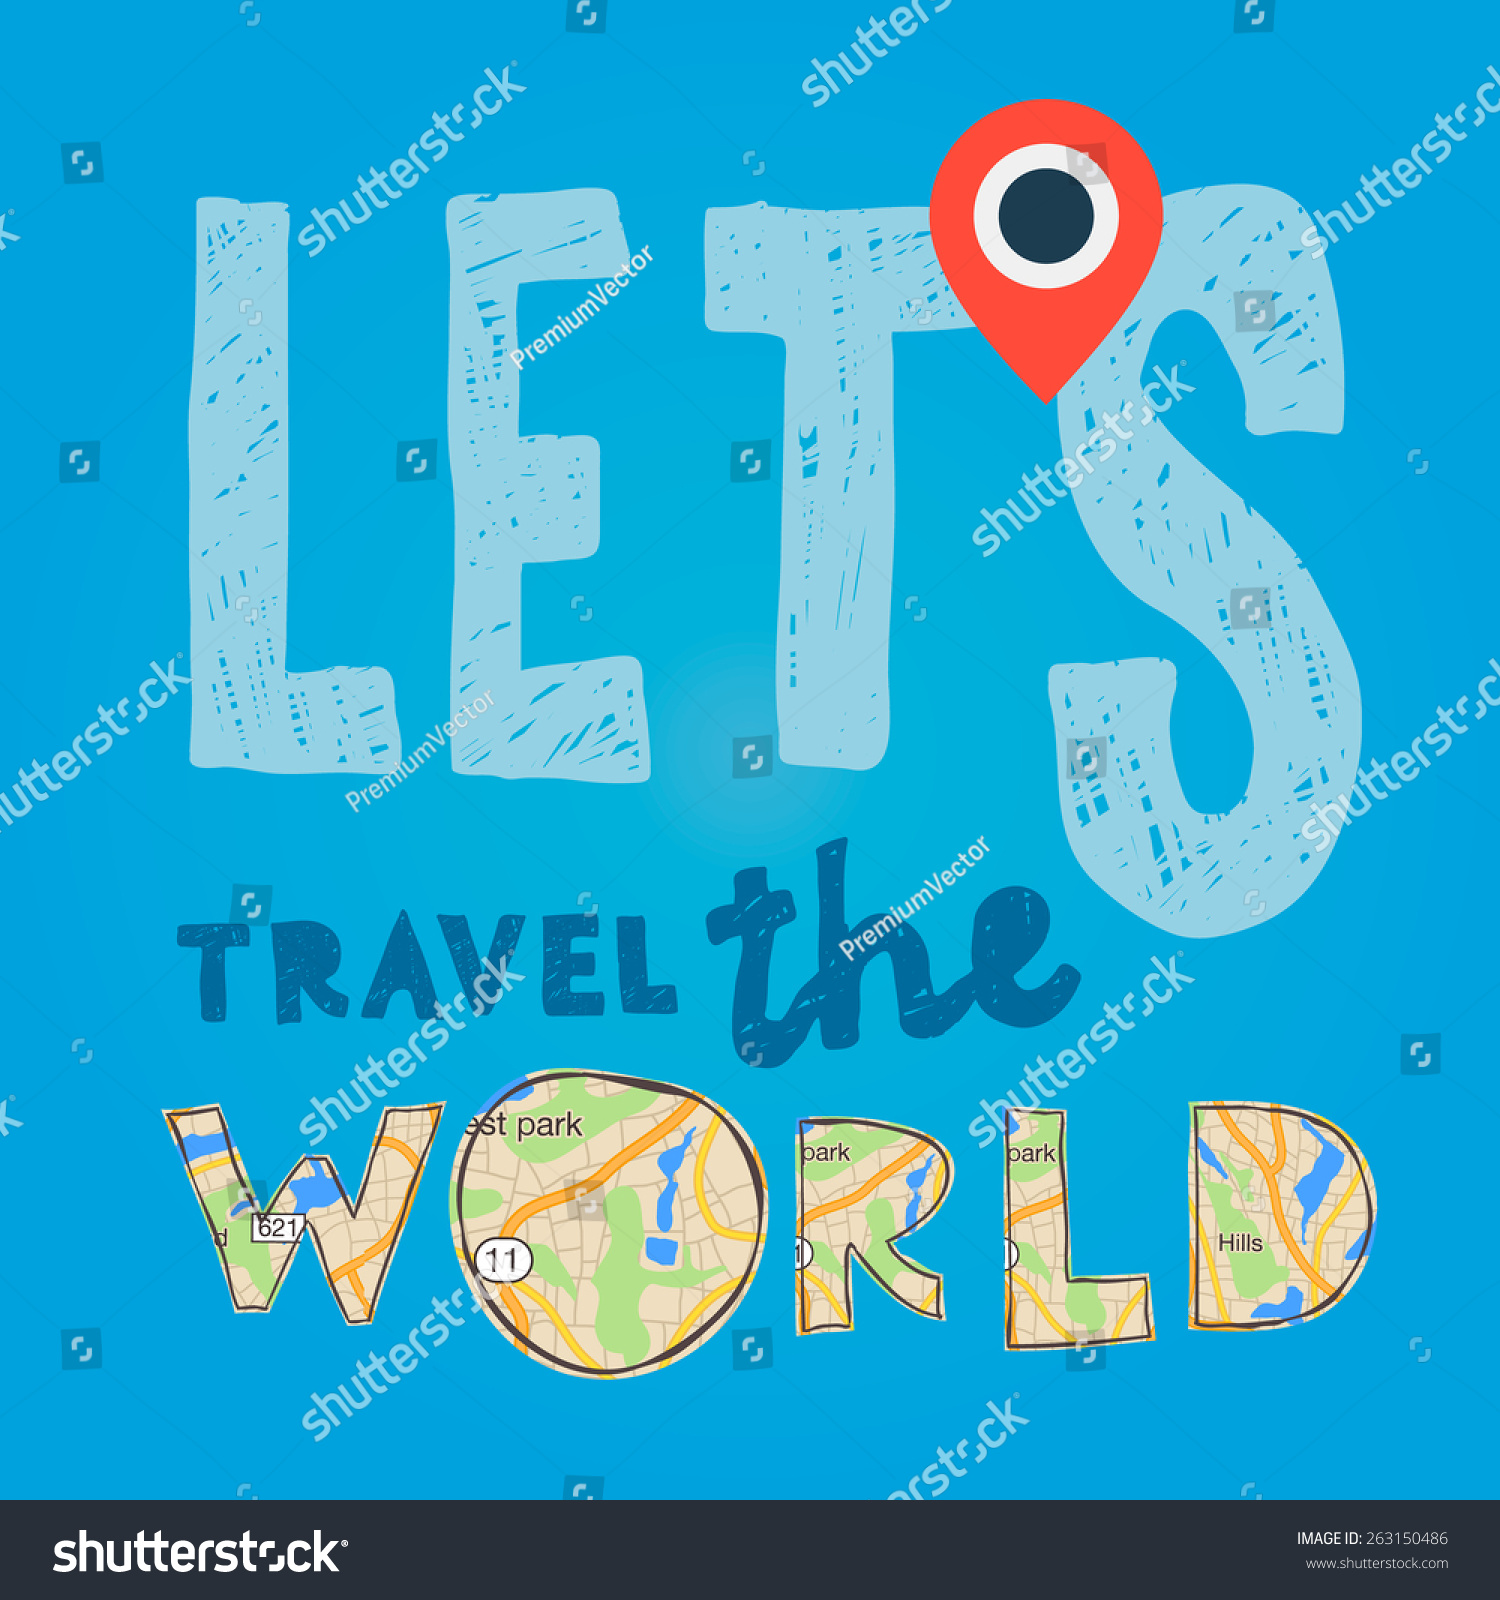 Go Travel Vacations: Lets Go Travel World Vacations Tourism Stock Vector